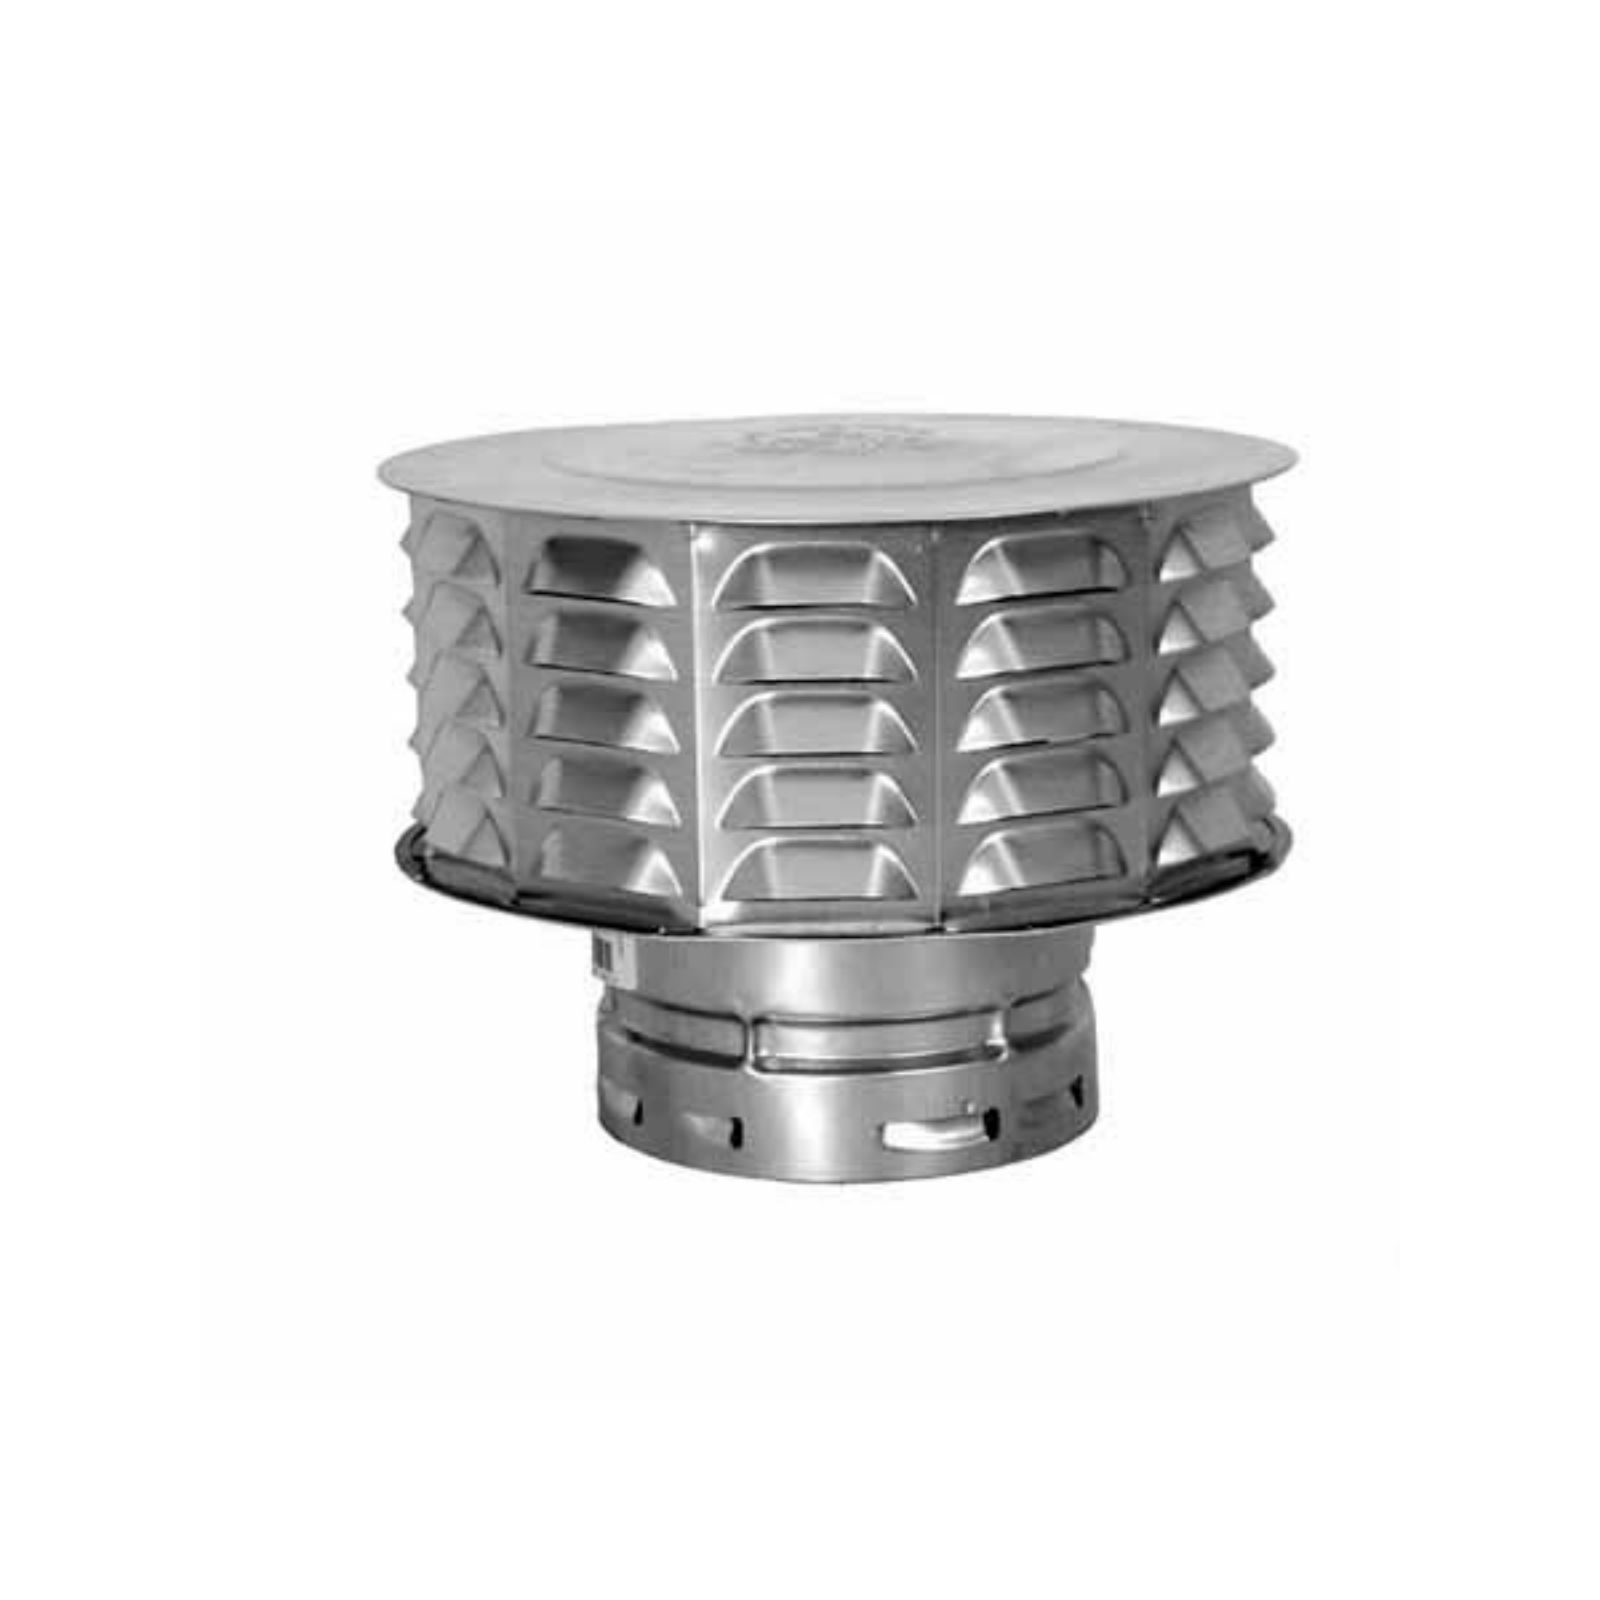 "AmeriVent 4ECW - Snap-lock Cap 4"", Locking, Louvered"